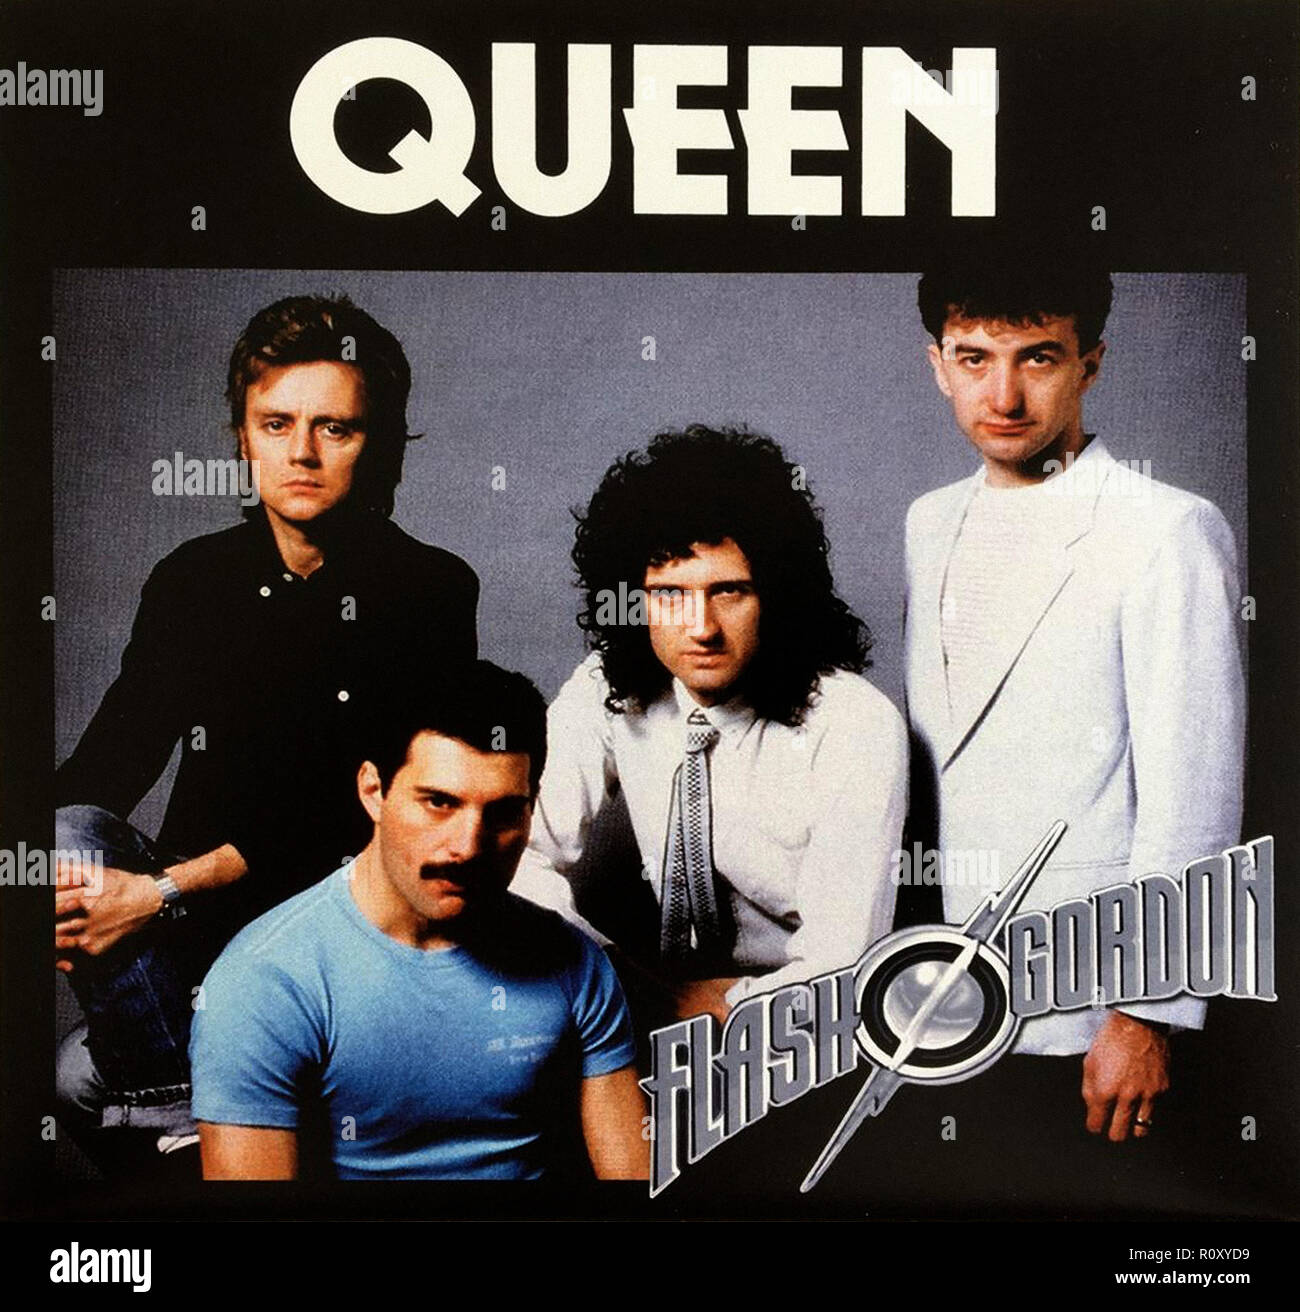 QUEEN - FLASH GORDON - Vintage cover album Stock Photo: 224327077